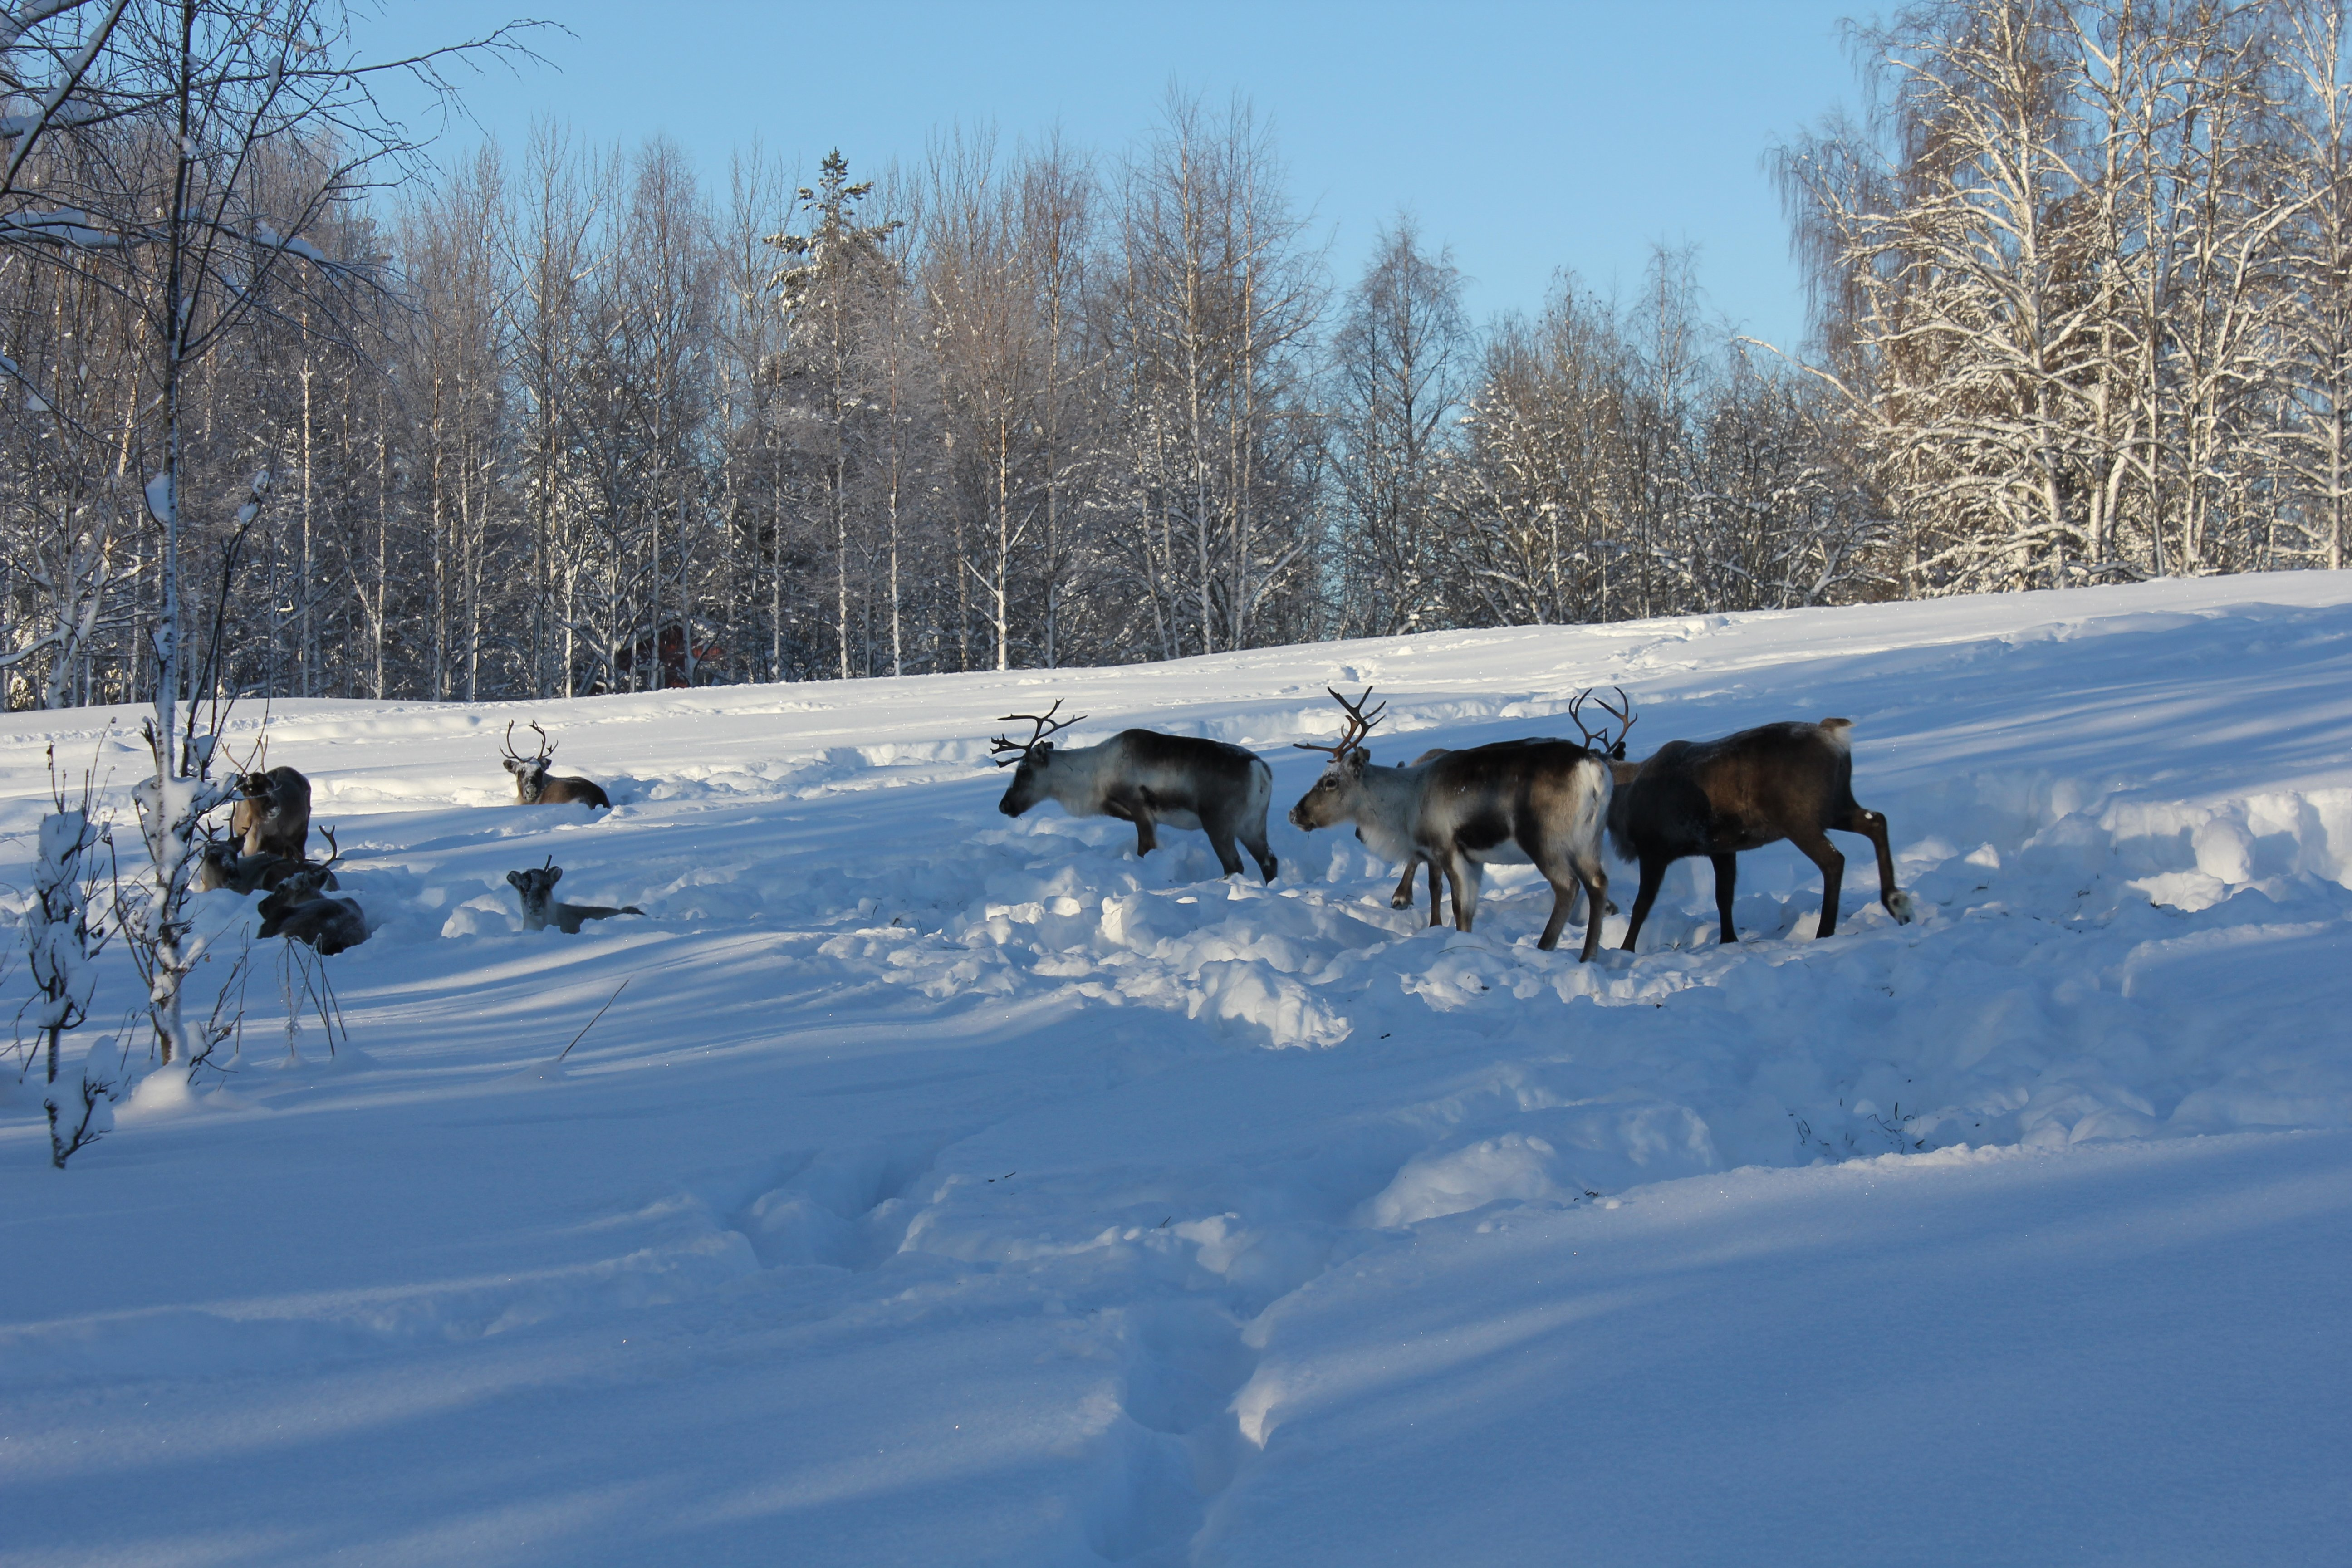 moose-sighting-swedish-lapland